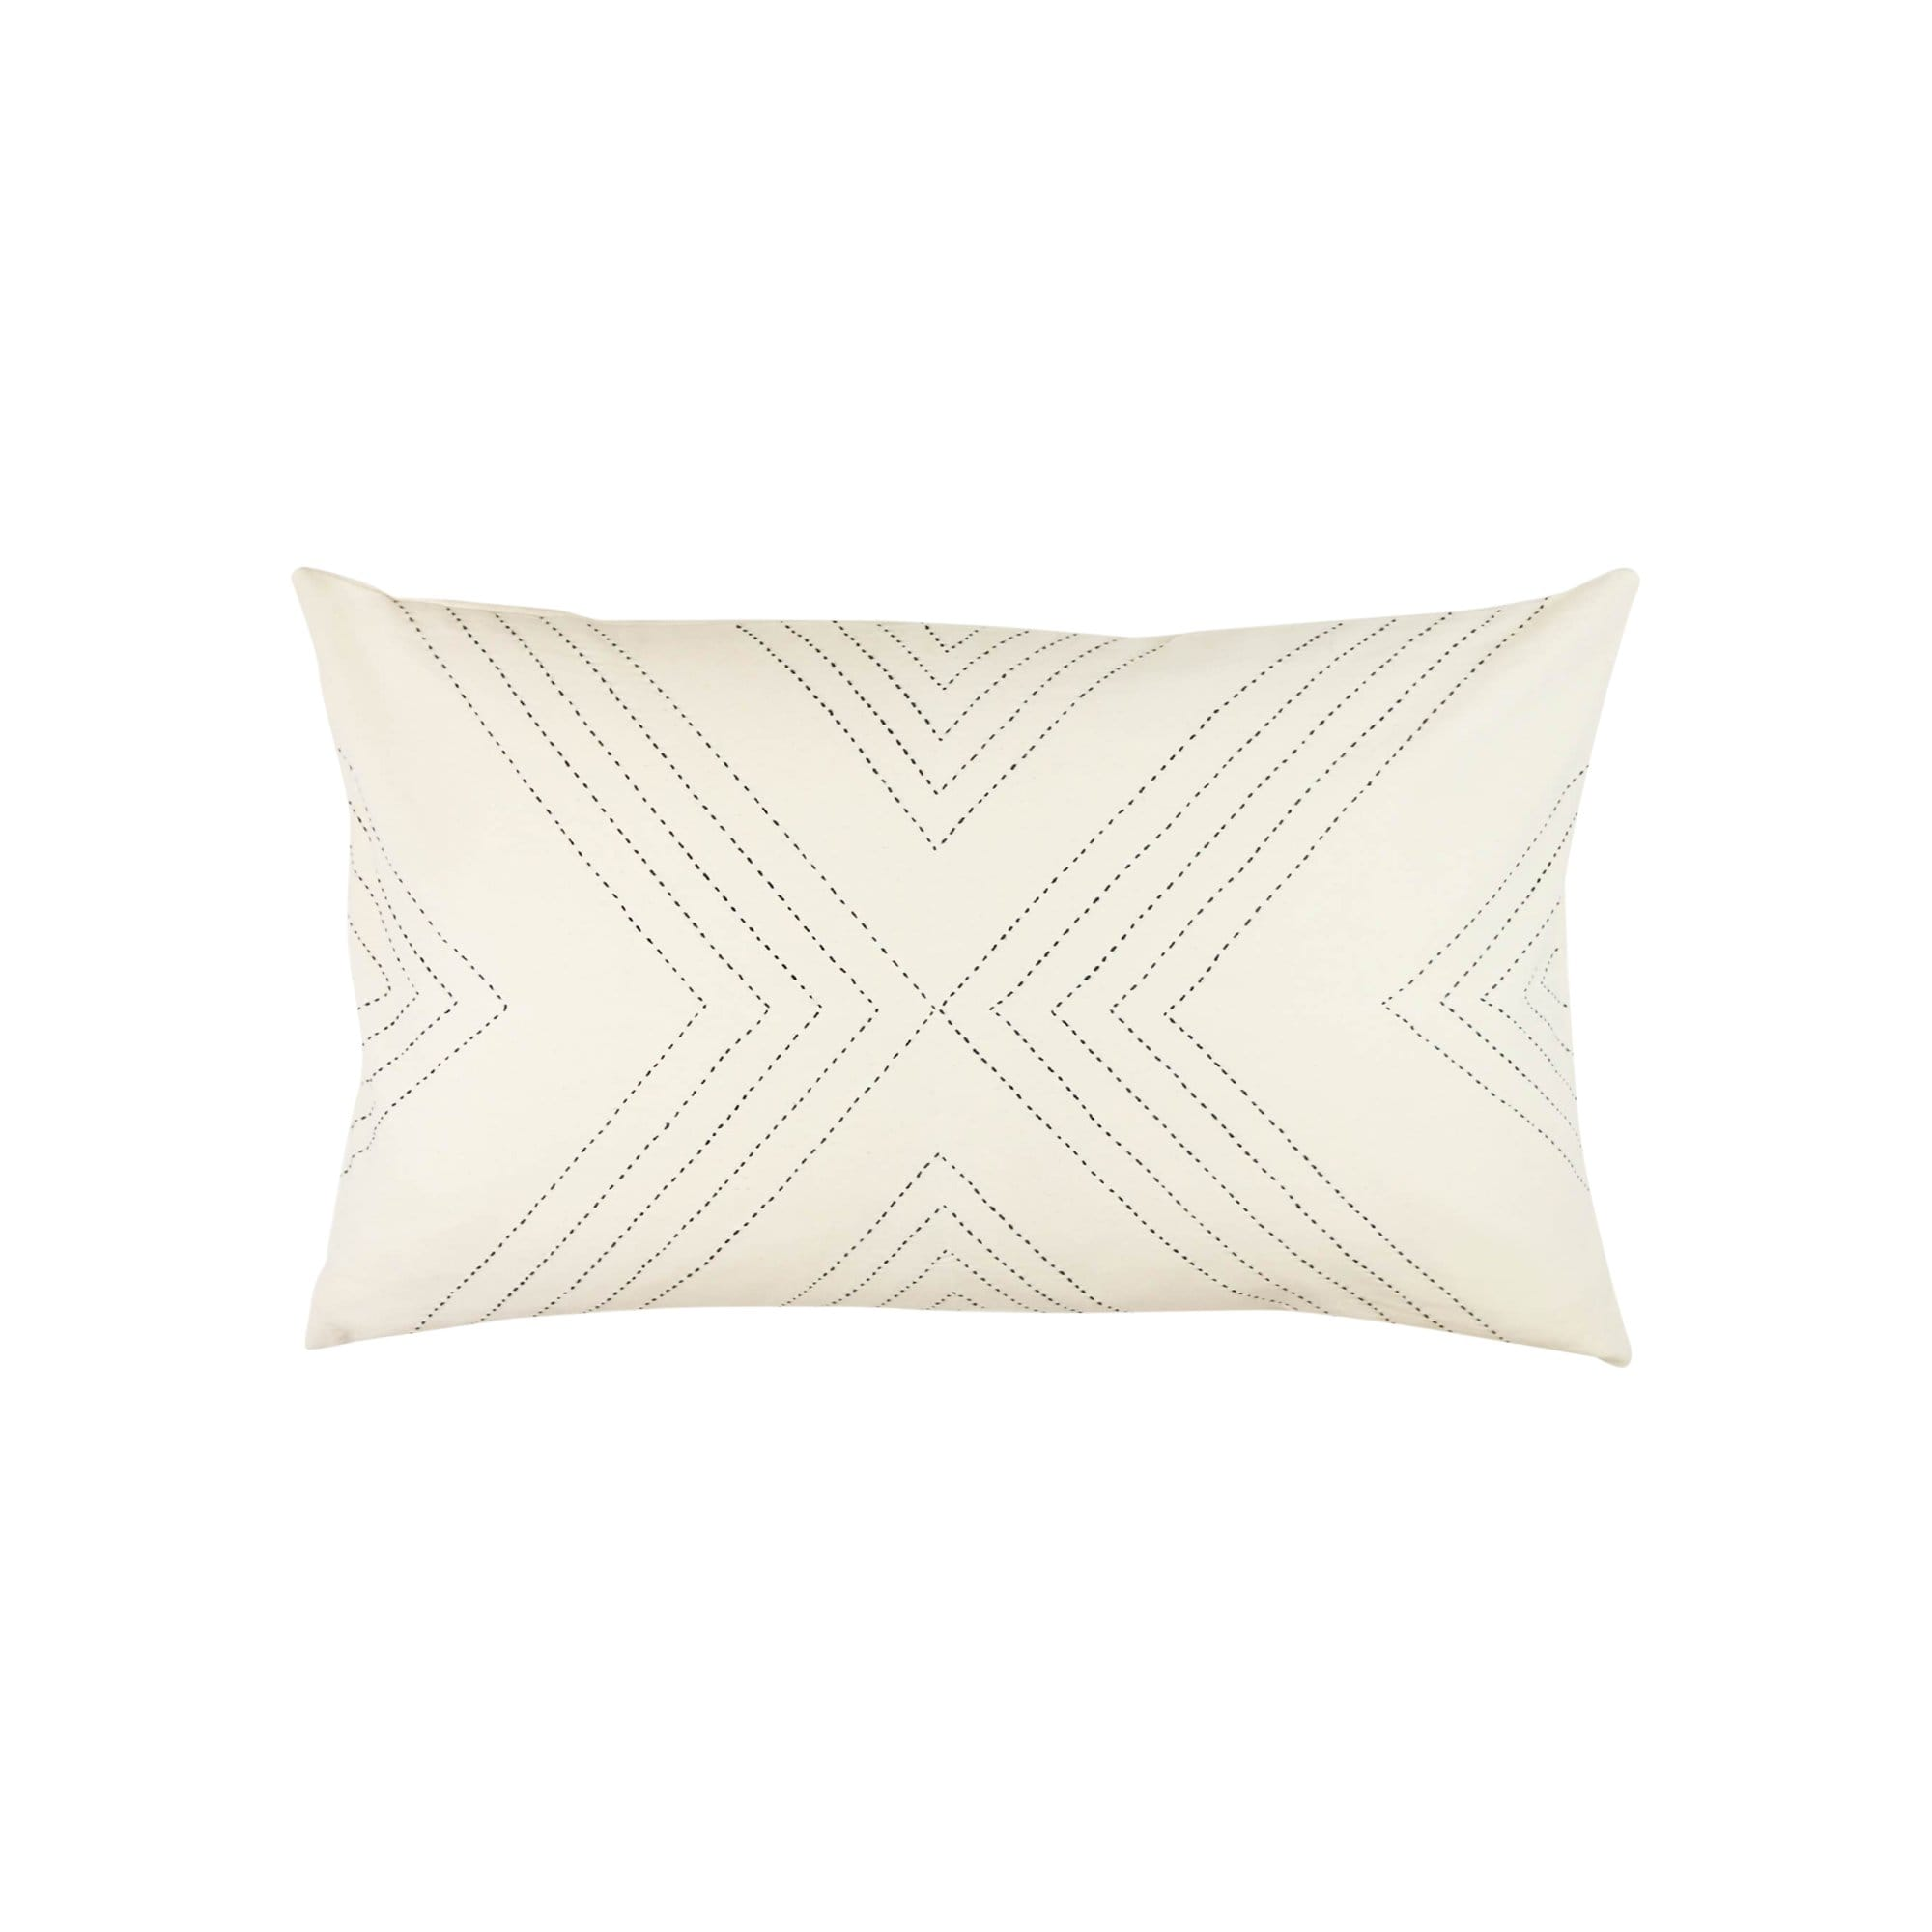 Anchal Project Cushions + Throws Bone Geometric Stitch Lumbar Pillow